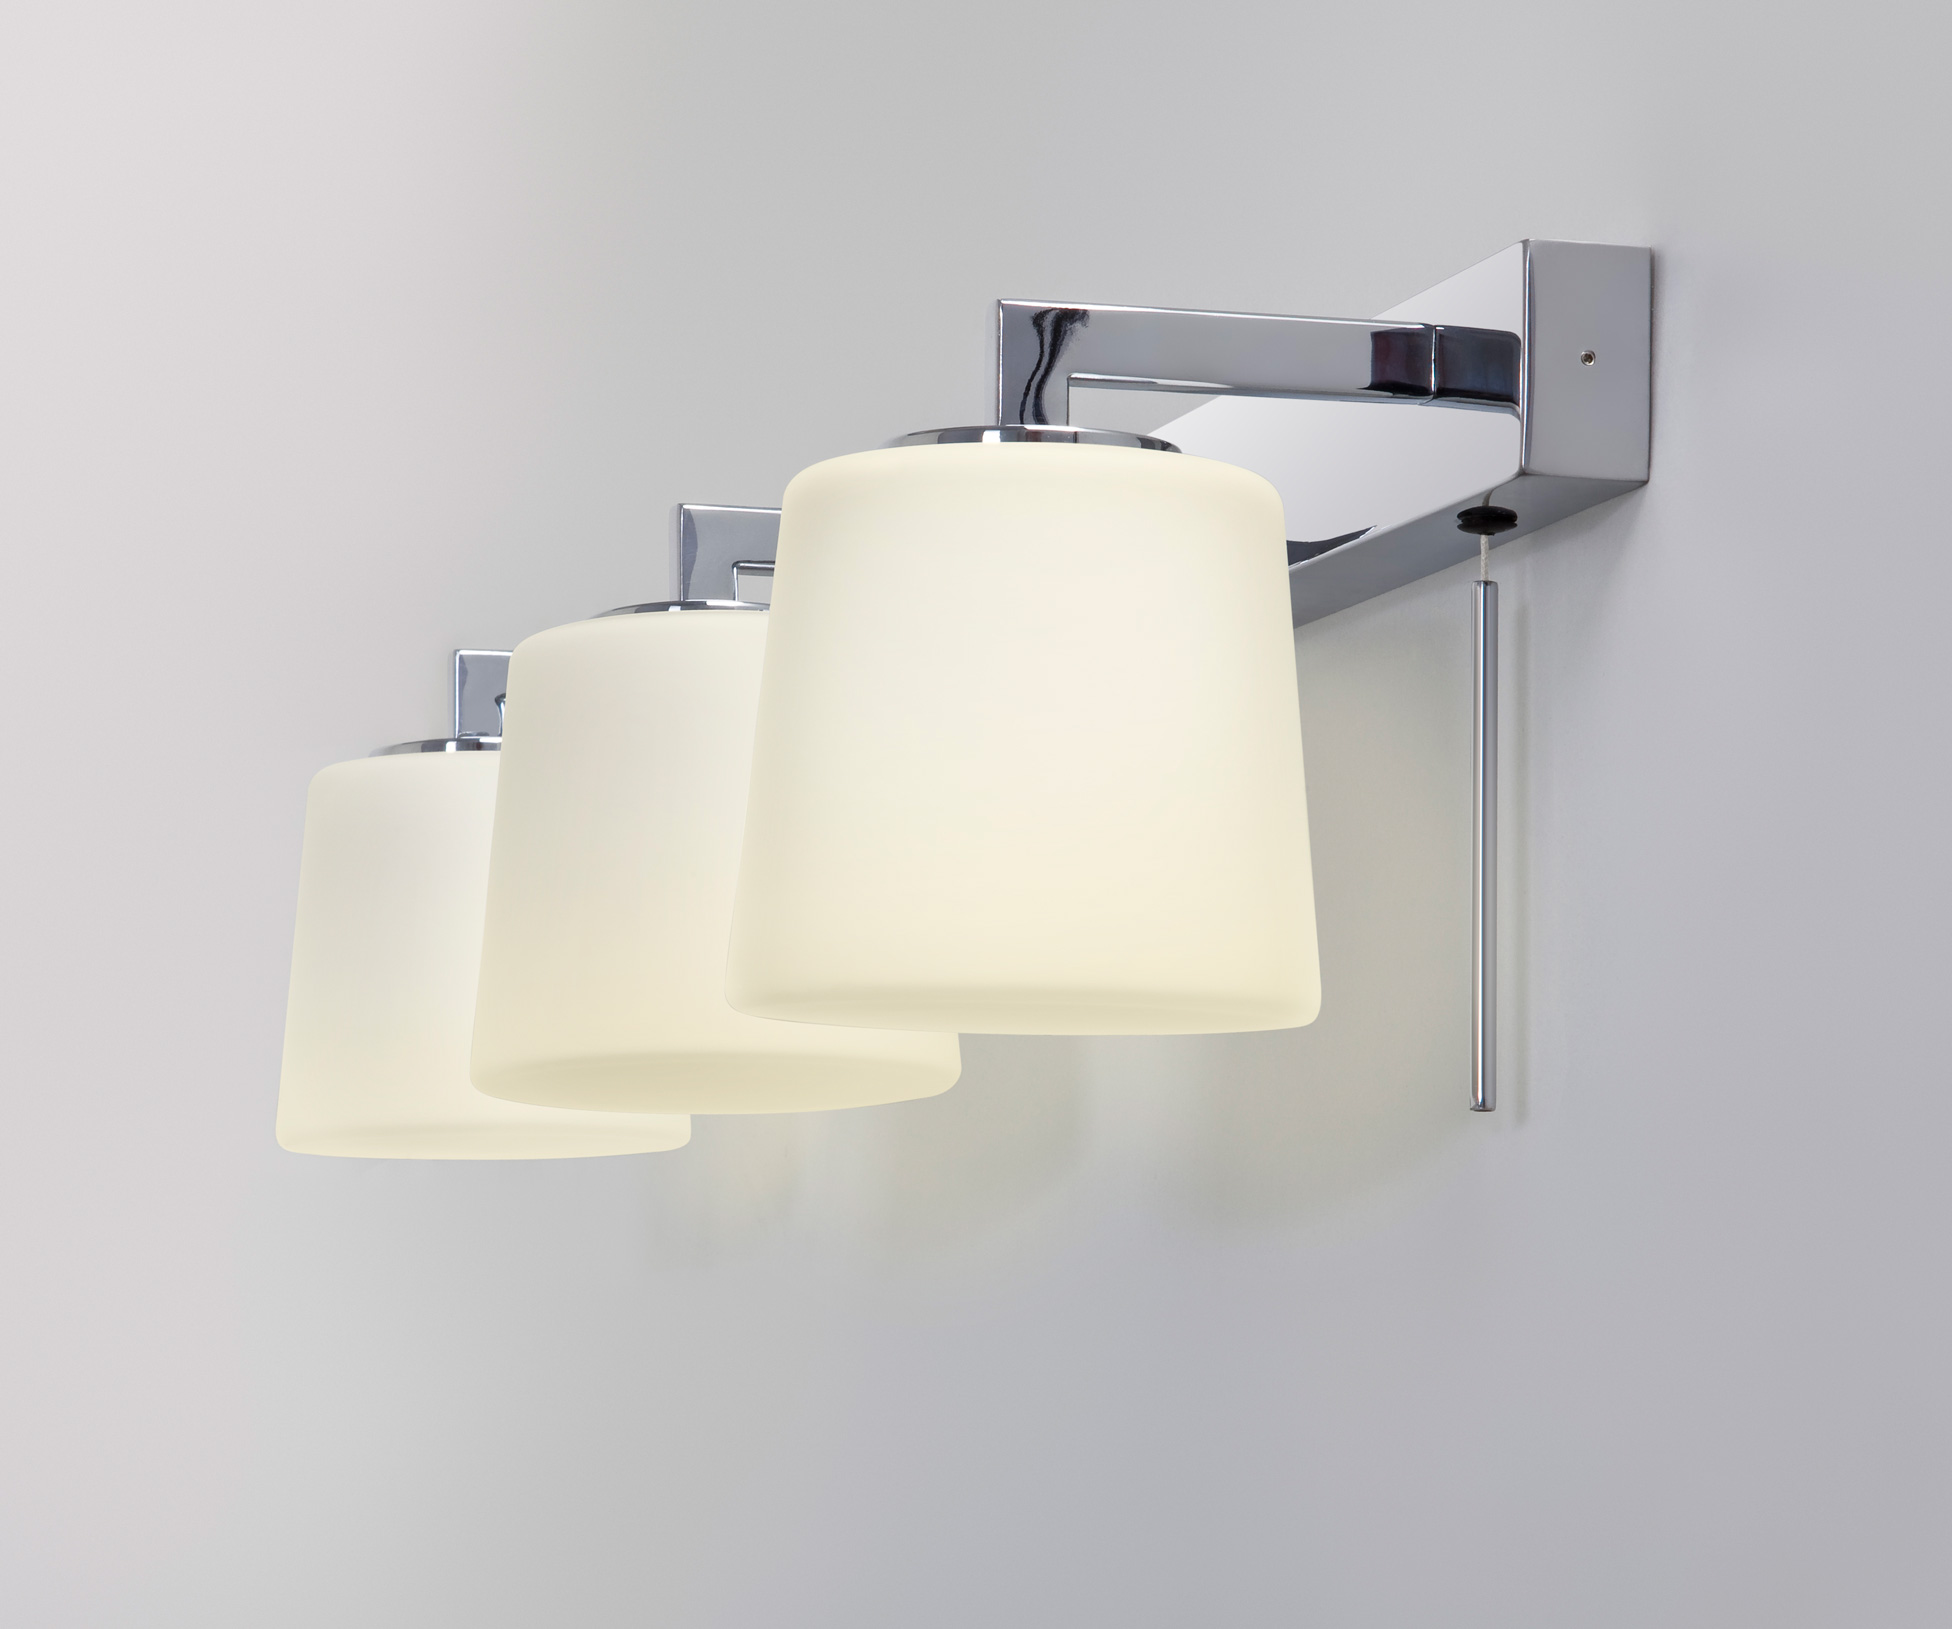 bathroom mirror wall lights astro triplex bathroom mirror wall light 3 x 40w g9 switch 16258